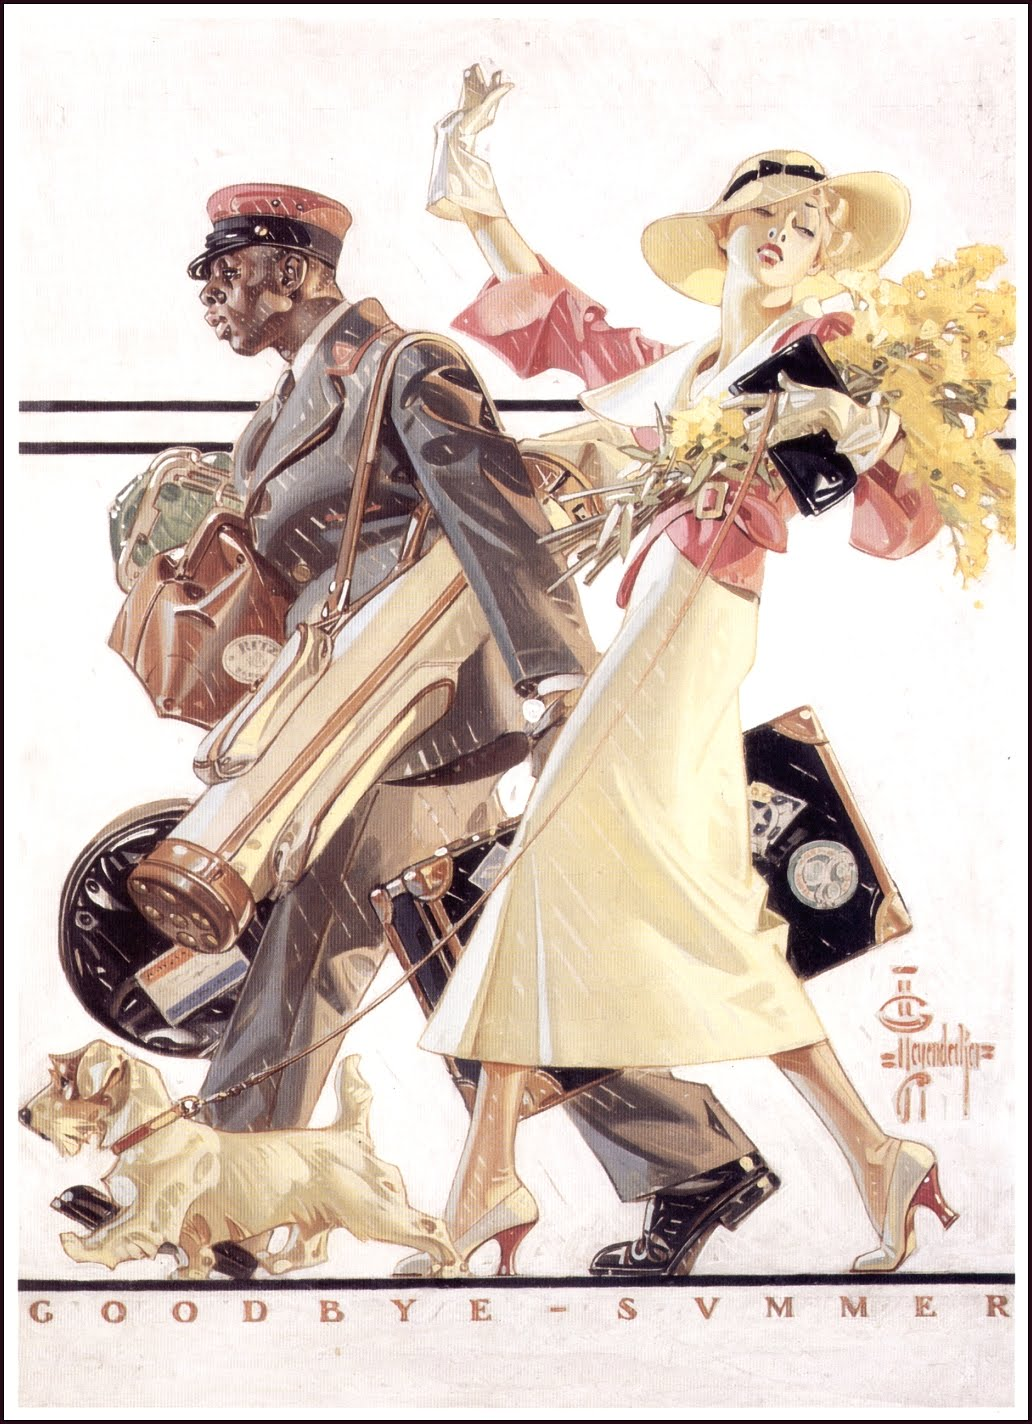 J.C. Leyendecker Saturday Evening Post Magazine Issue August 27 1927 SUMMER